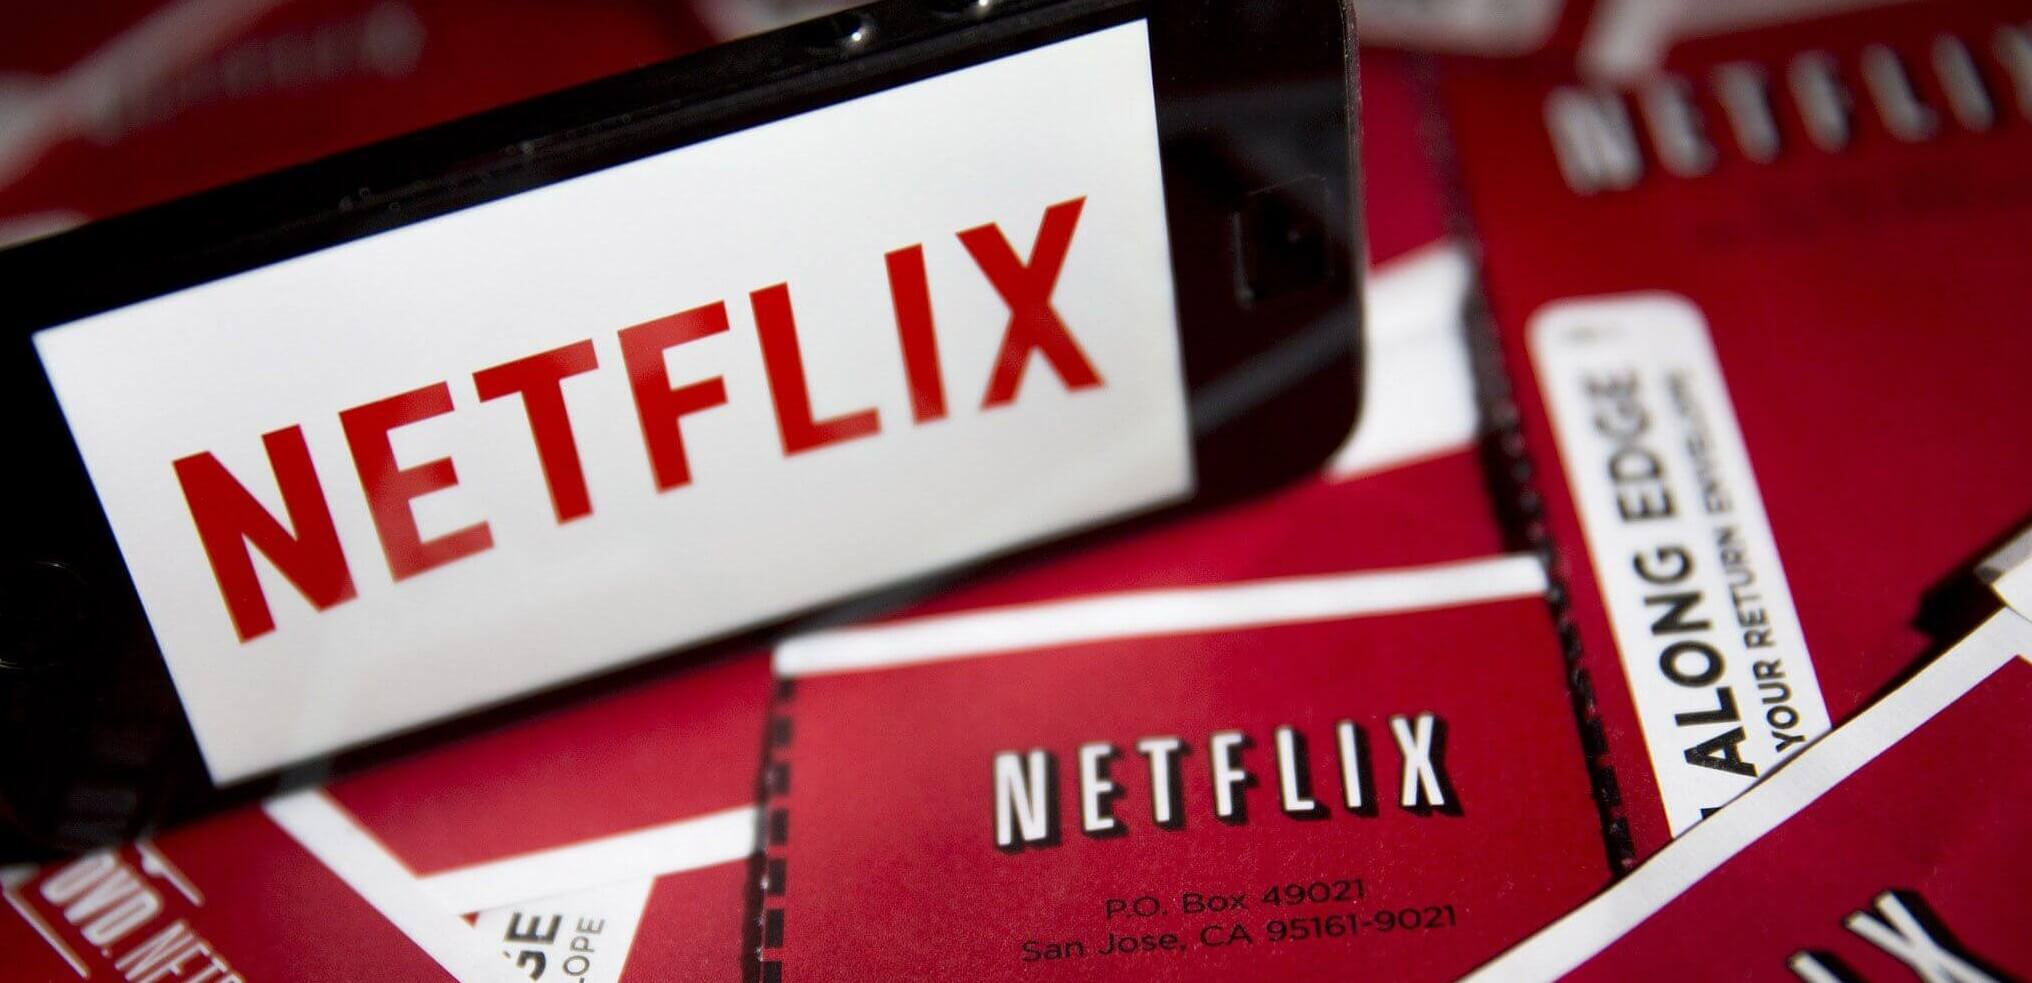 Netflix is raising $1.5 billion for even more original content